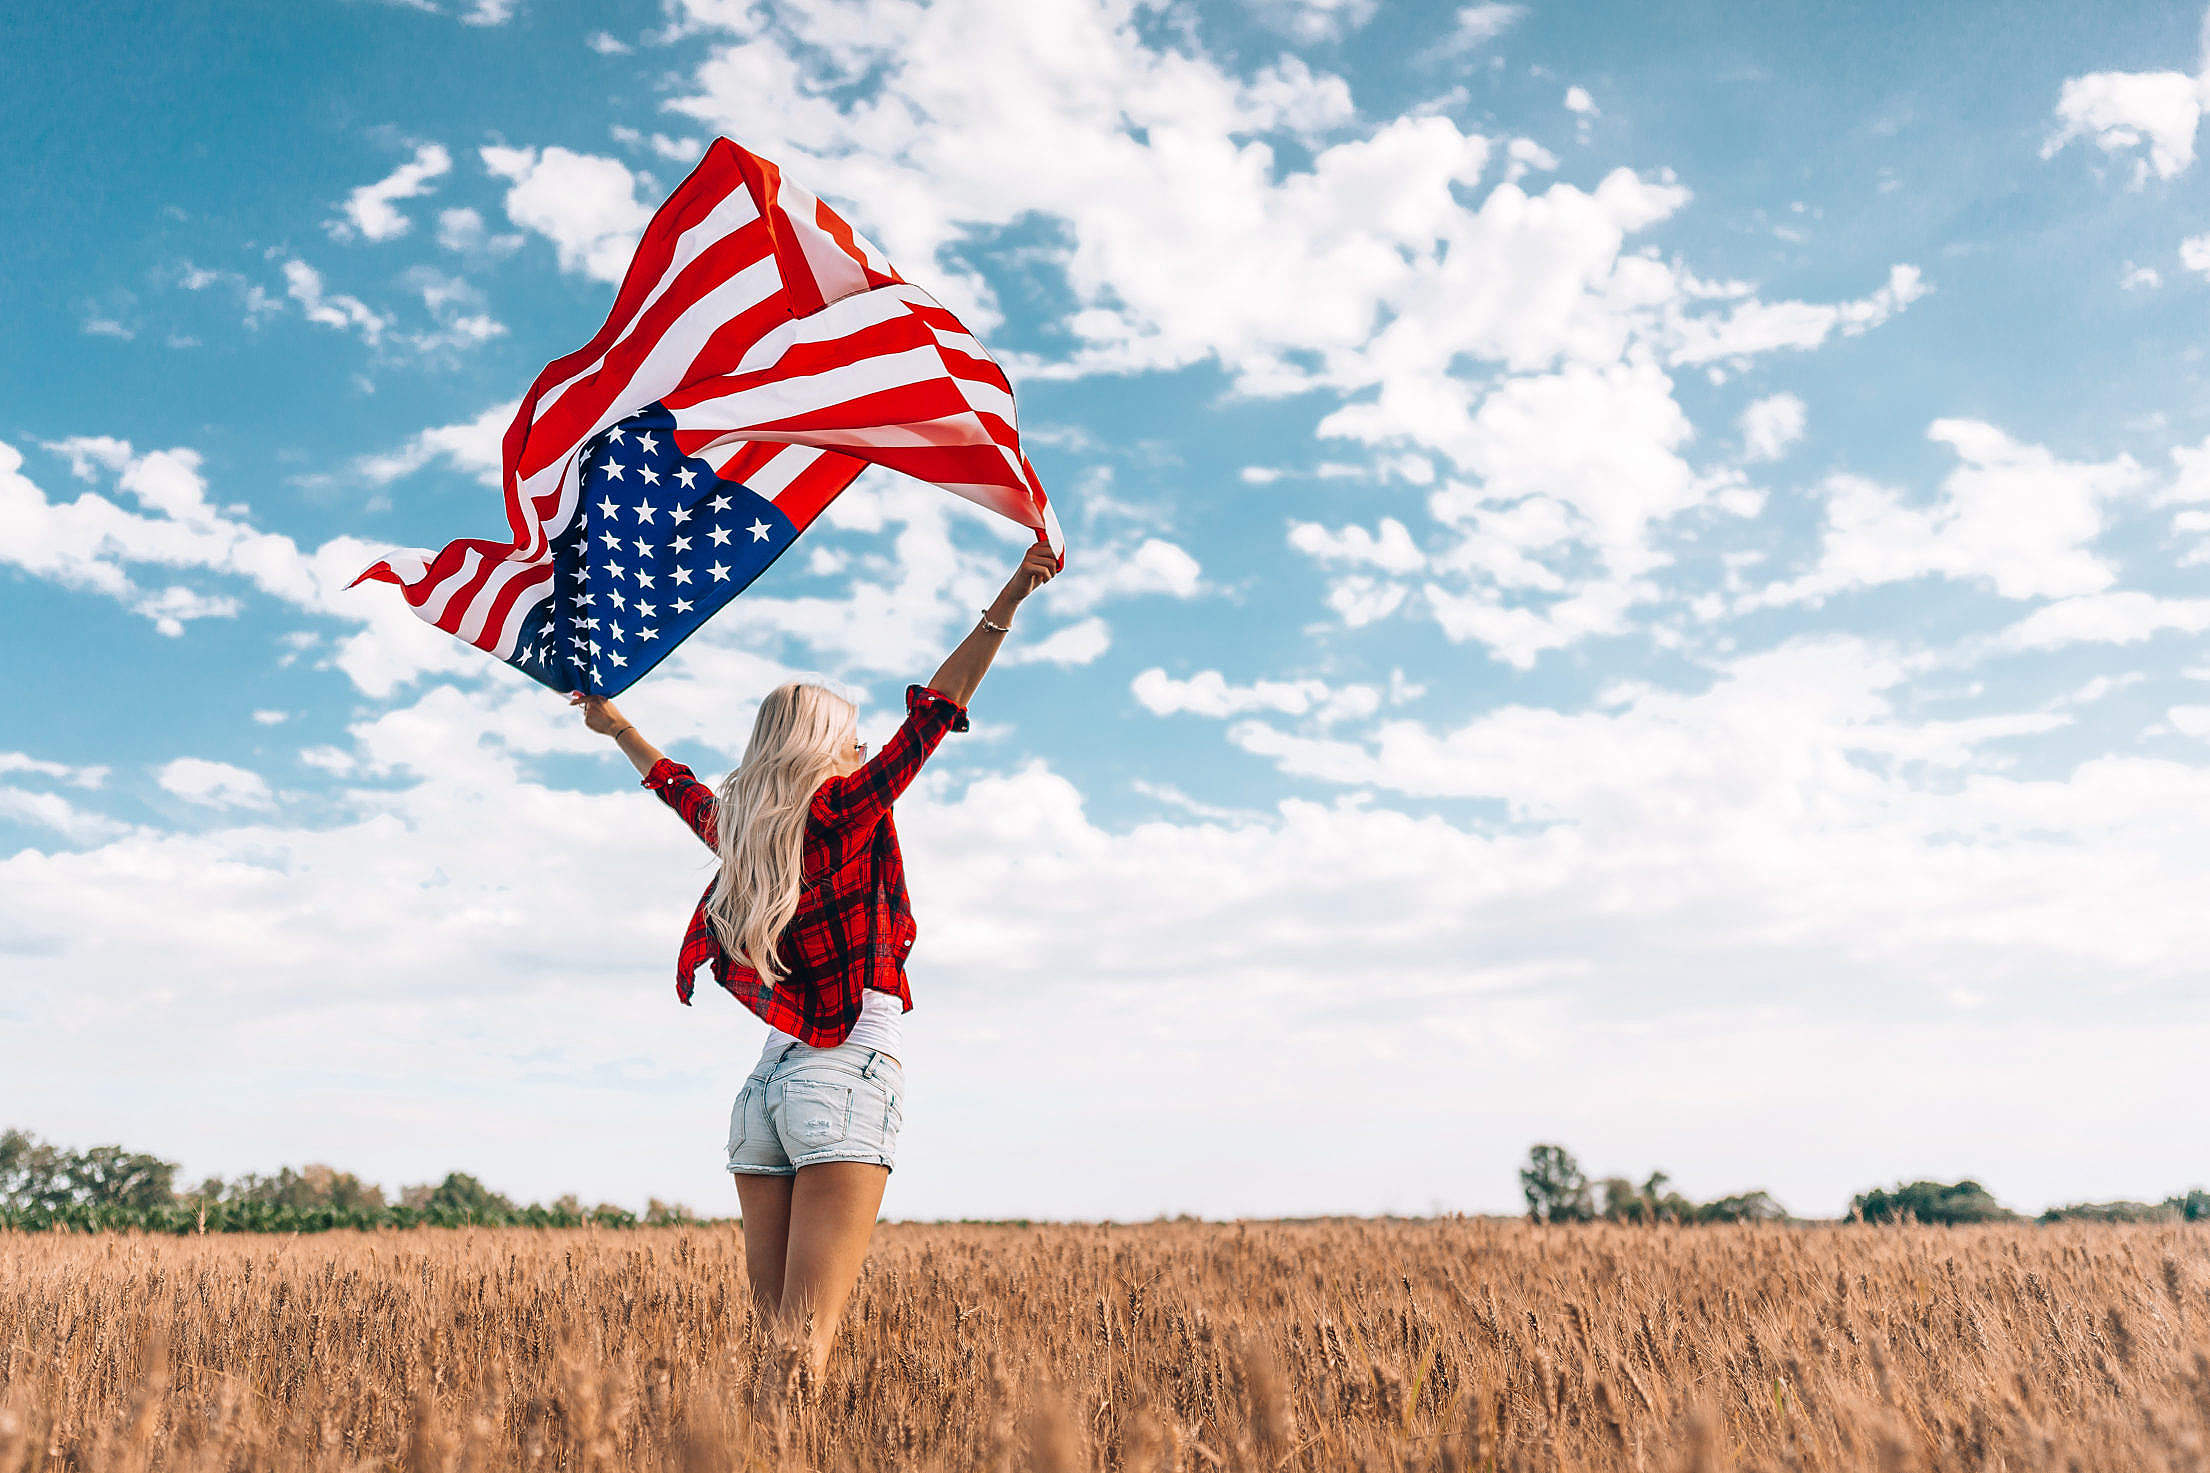 Woman Celebrating Independence Day Free Stock Photo